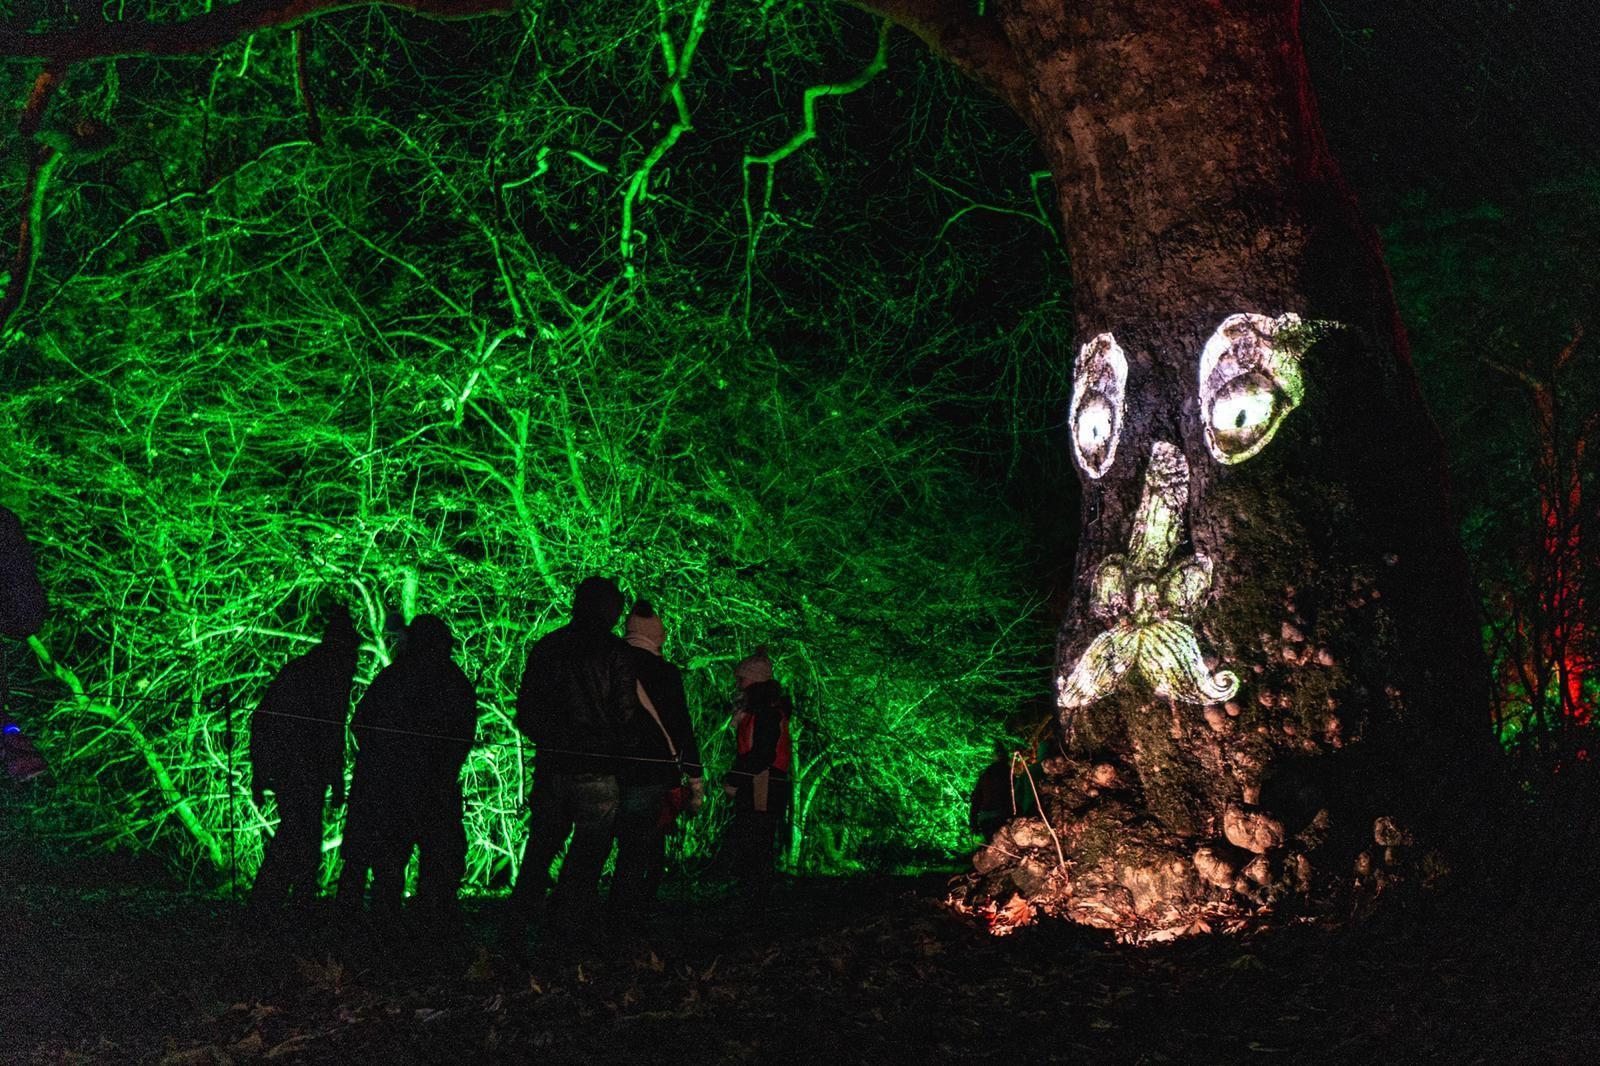 The grandfather tree at Westonbirt Enchanted Christmas